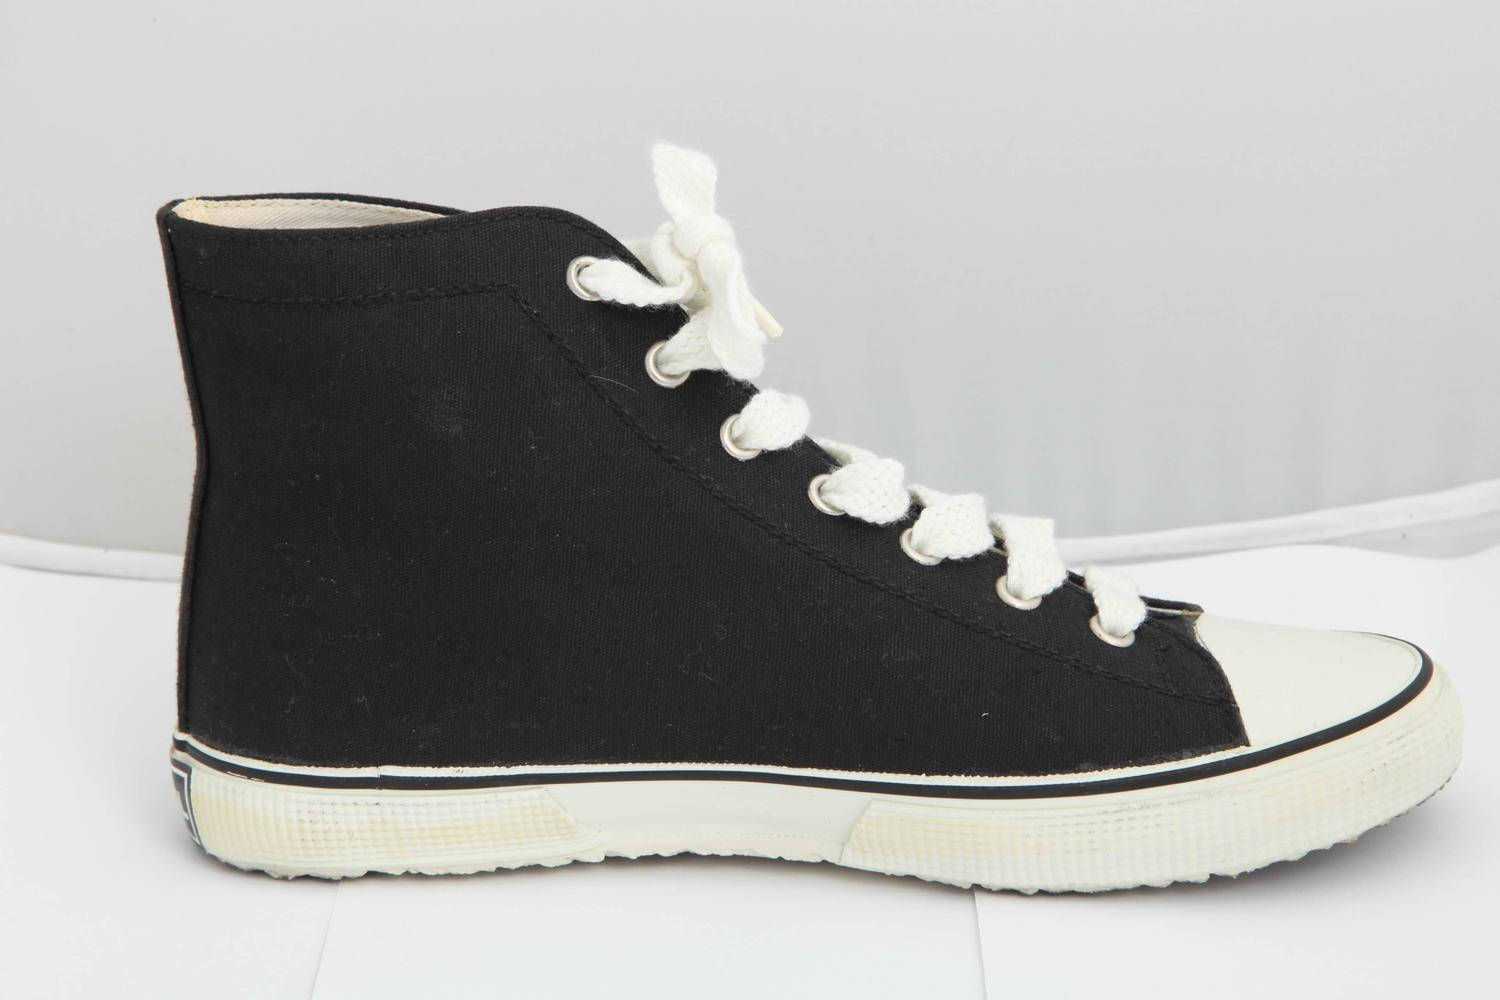 Rare Chanel Converse Style Sneakers Image 7